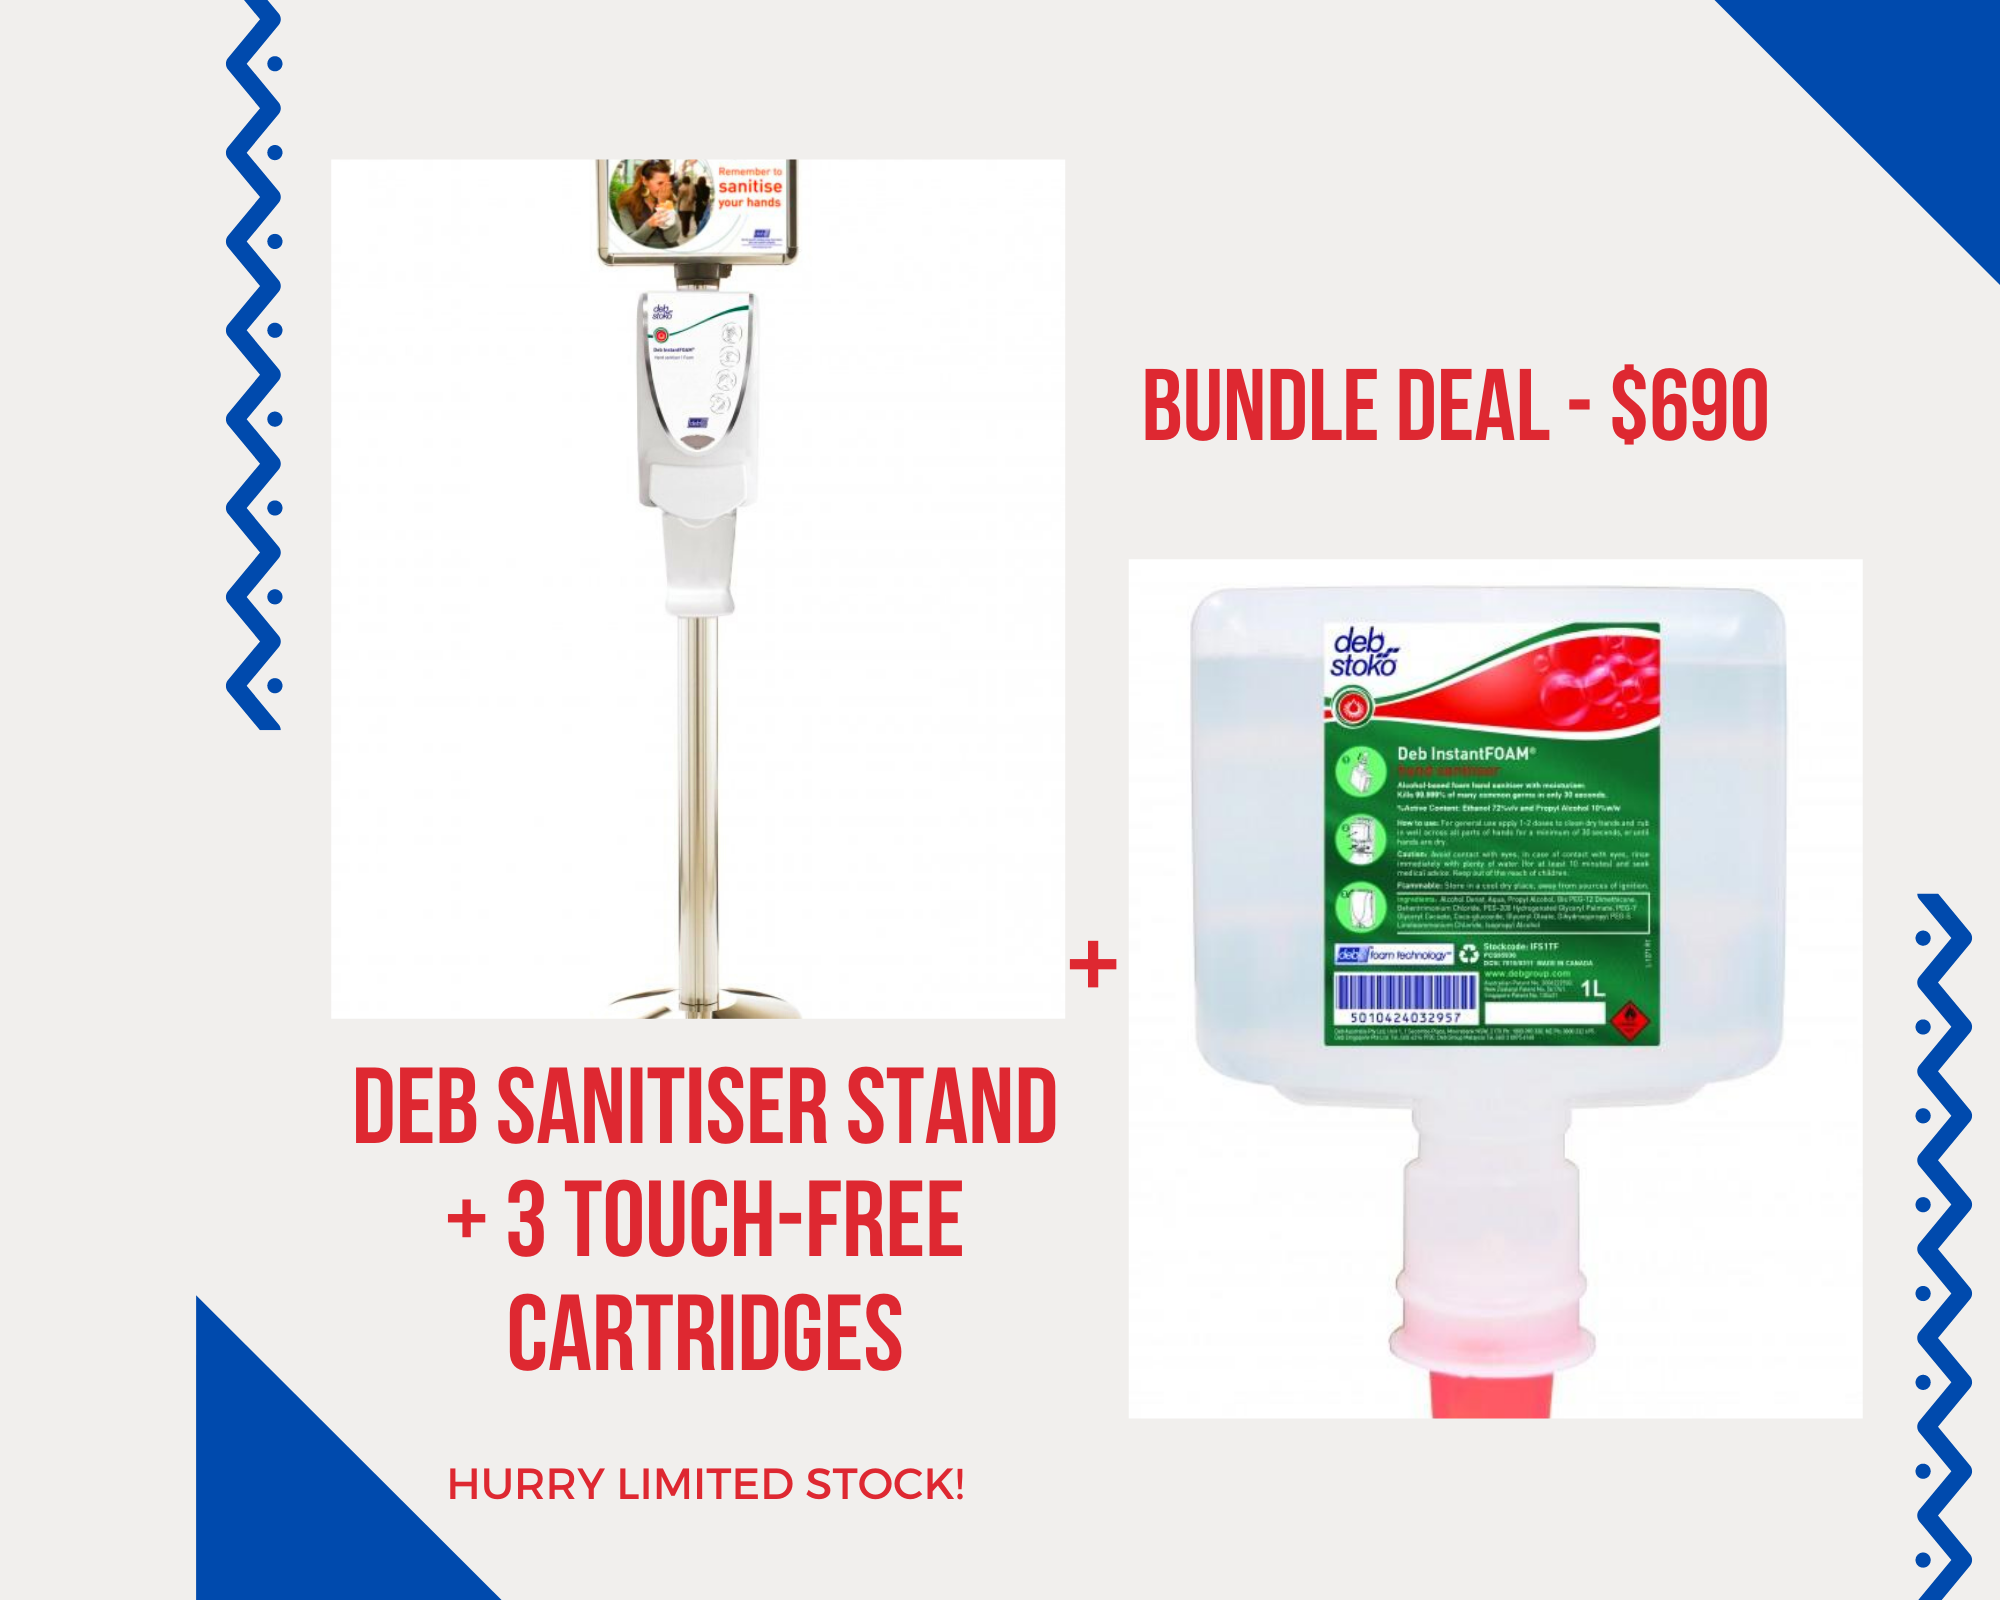 Deb Sanitiser Stand + 3 Touch-Free Cartridges